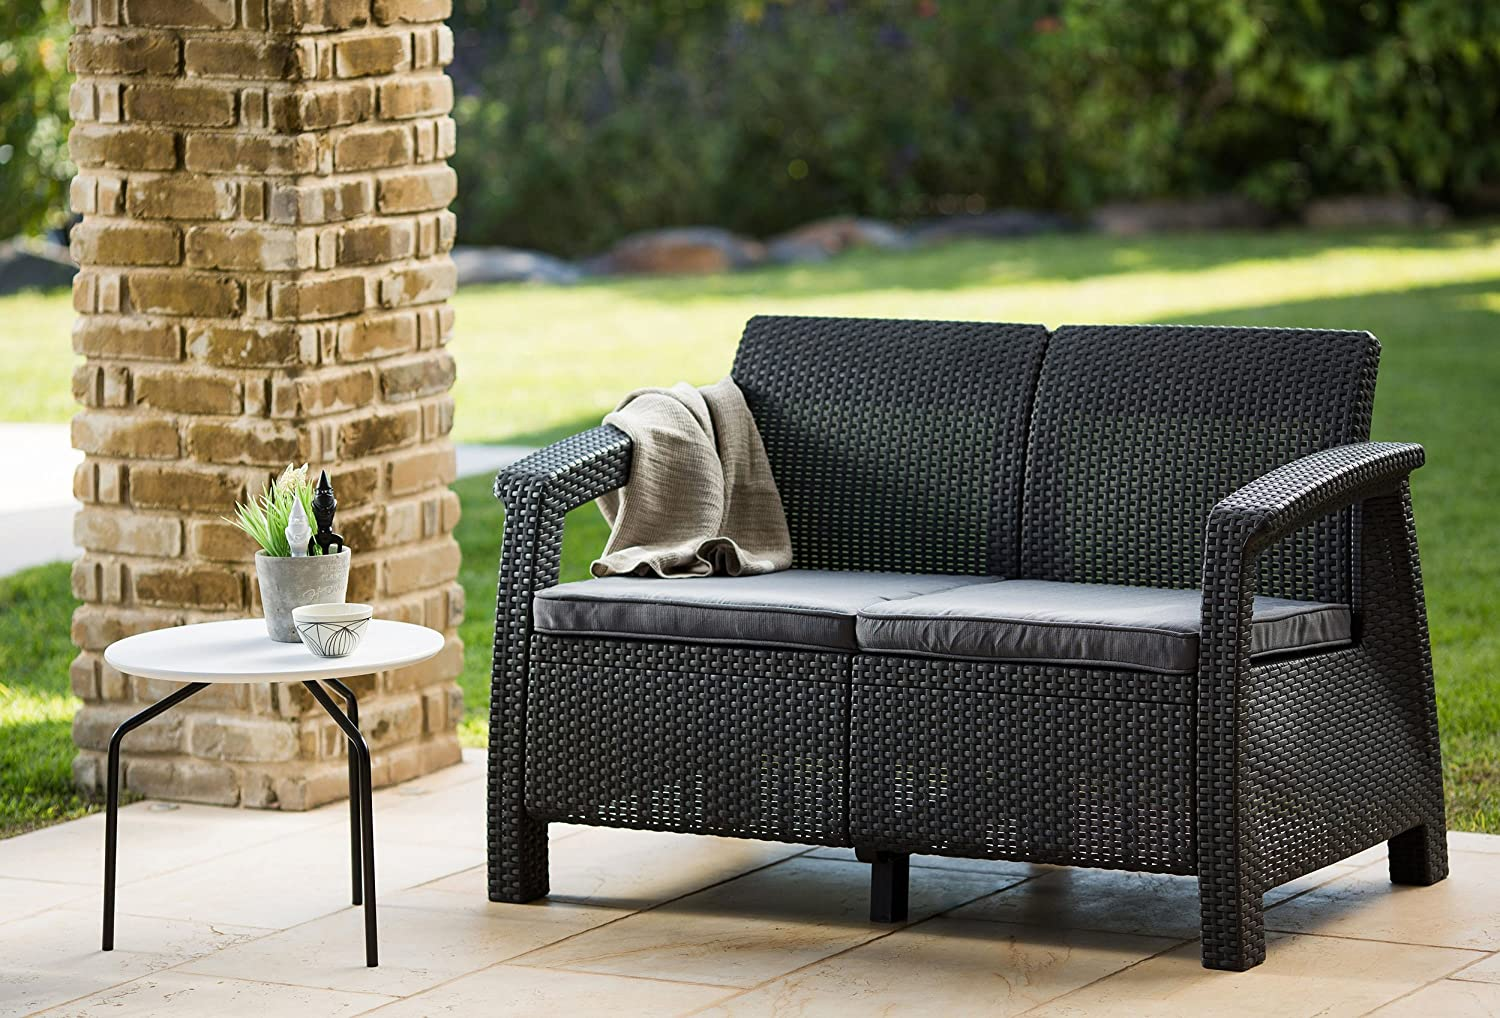 Amazon.com : Keter Corfu Love Seat All Weather Outdoor Patio Garden  Furniture W/ Cushions, Charcoal : Patio Loveseats : Garden U0026 Outdoor